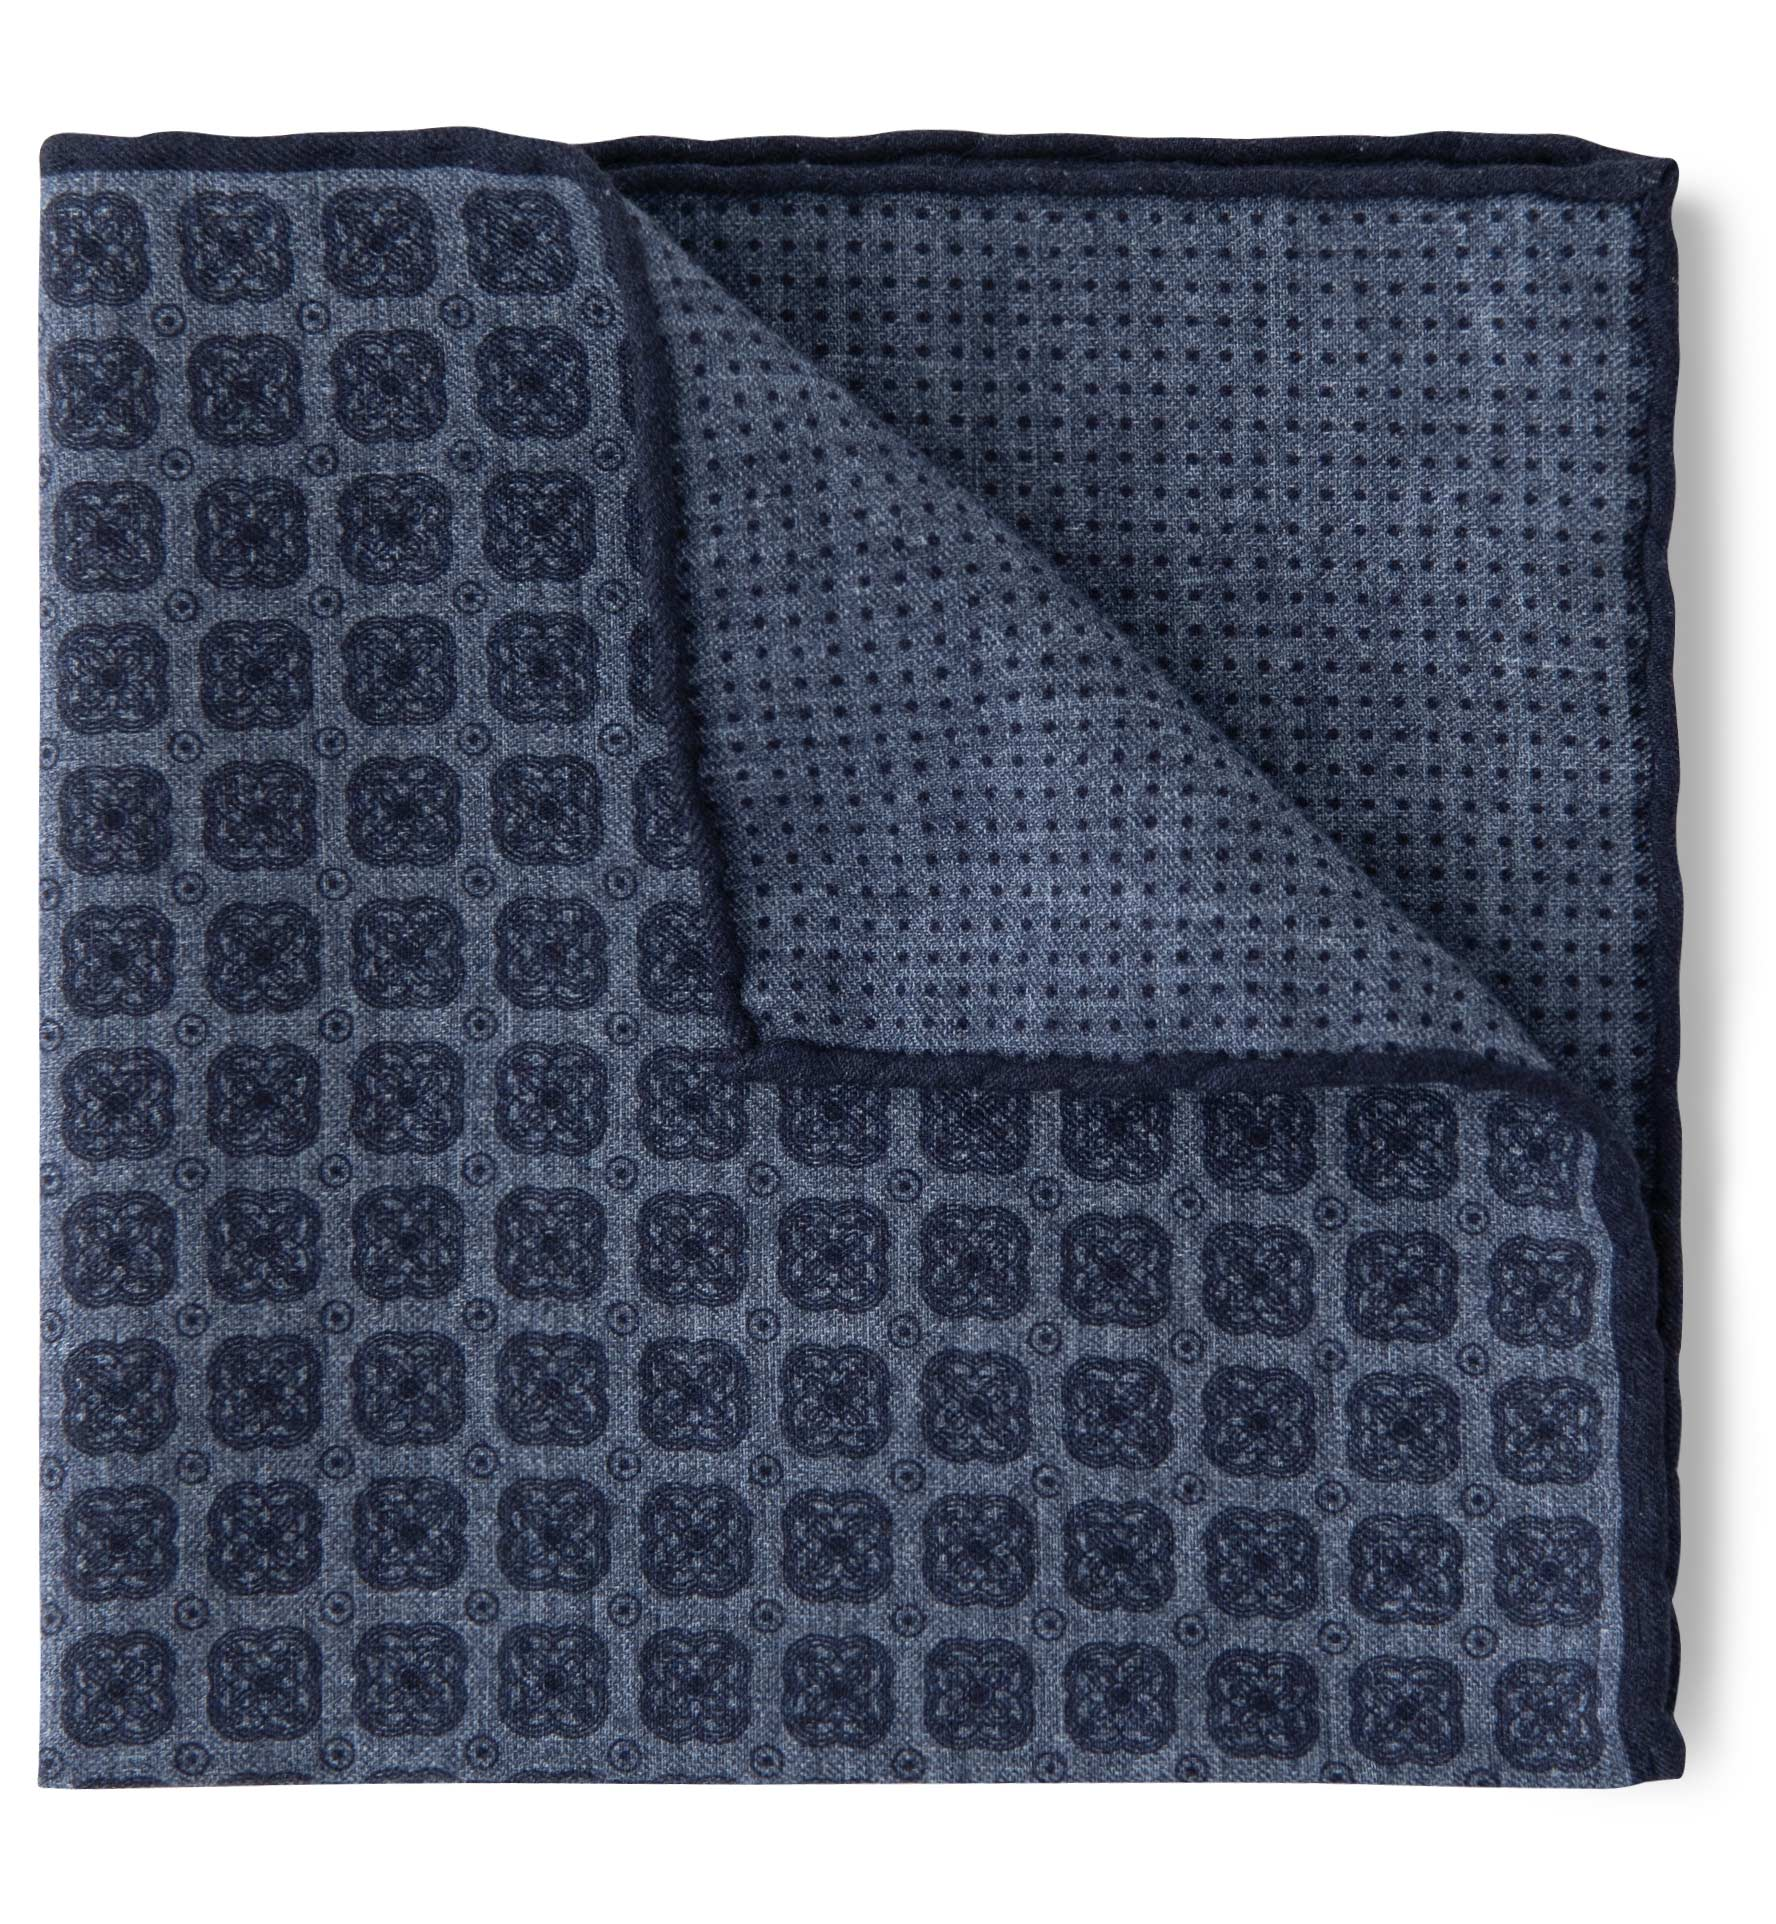 Zoom Image of Faded Blue Foulard Print Cotton and Wool Pocket Square